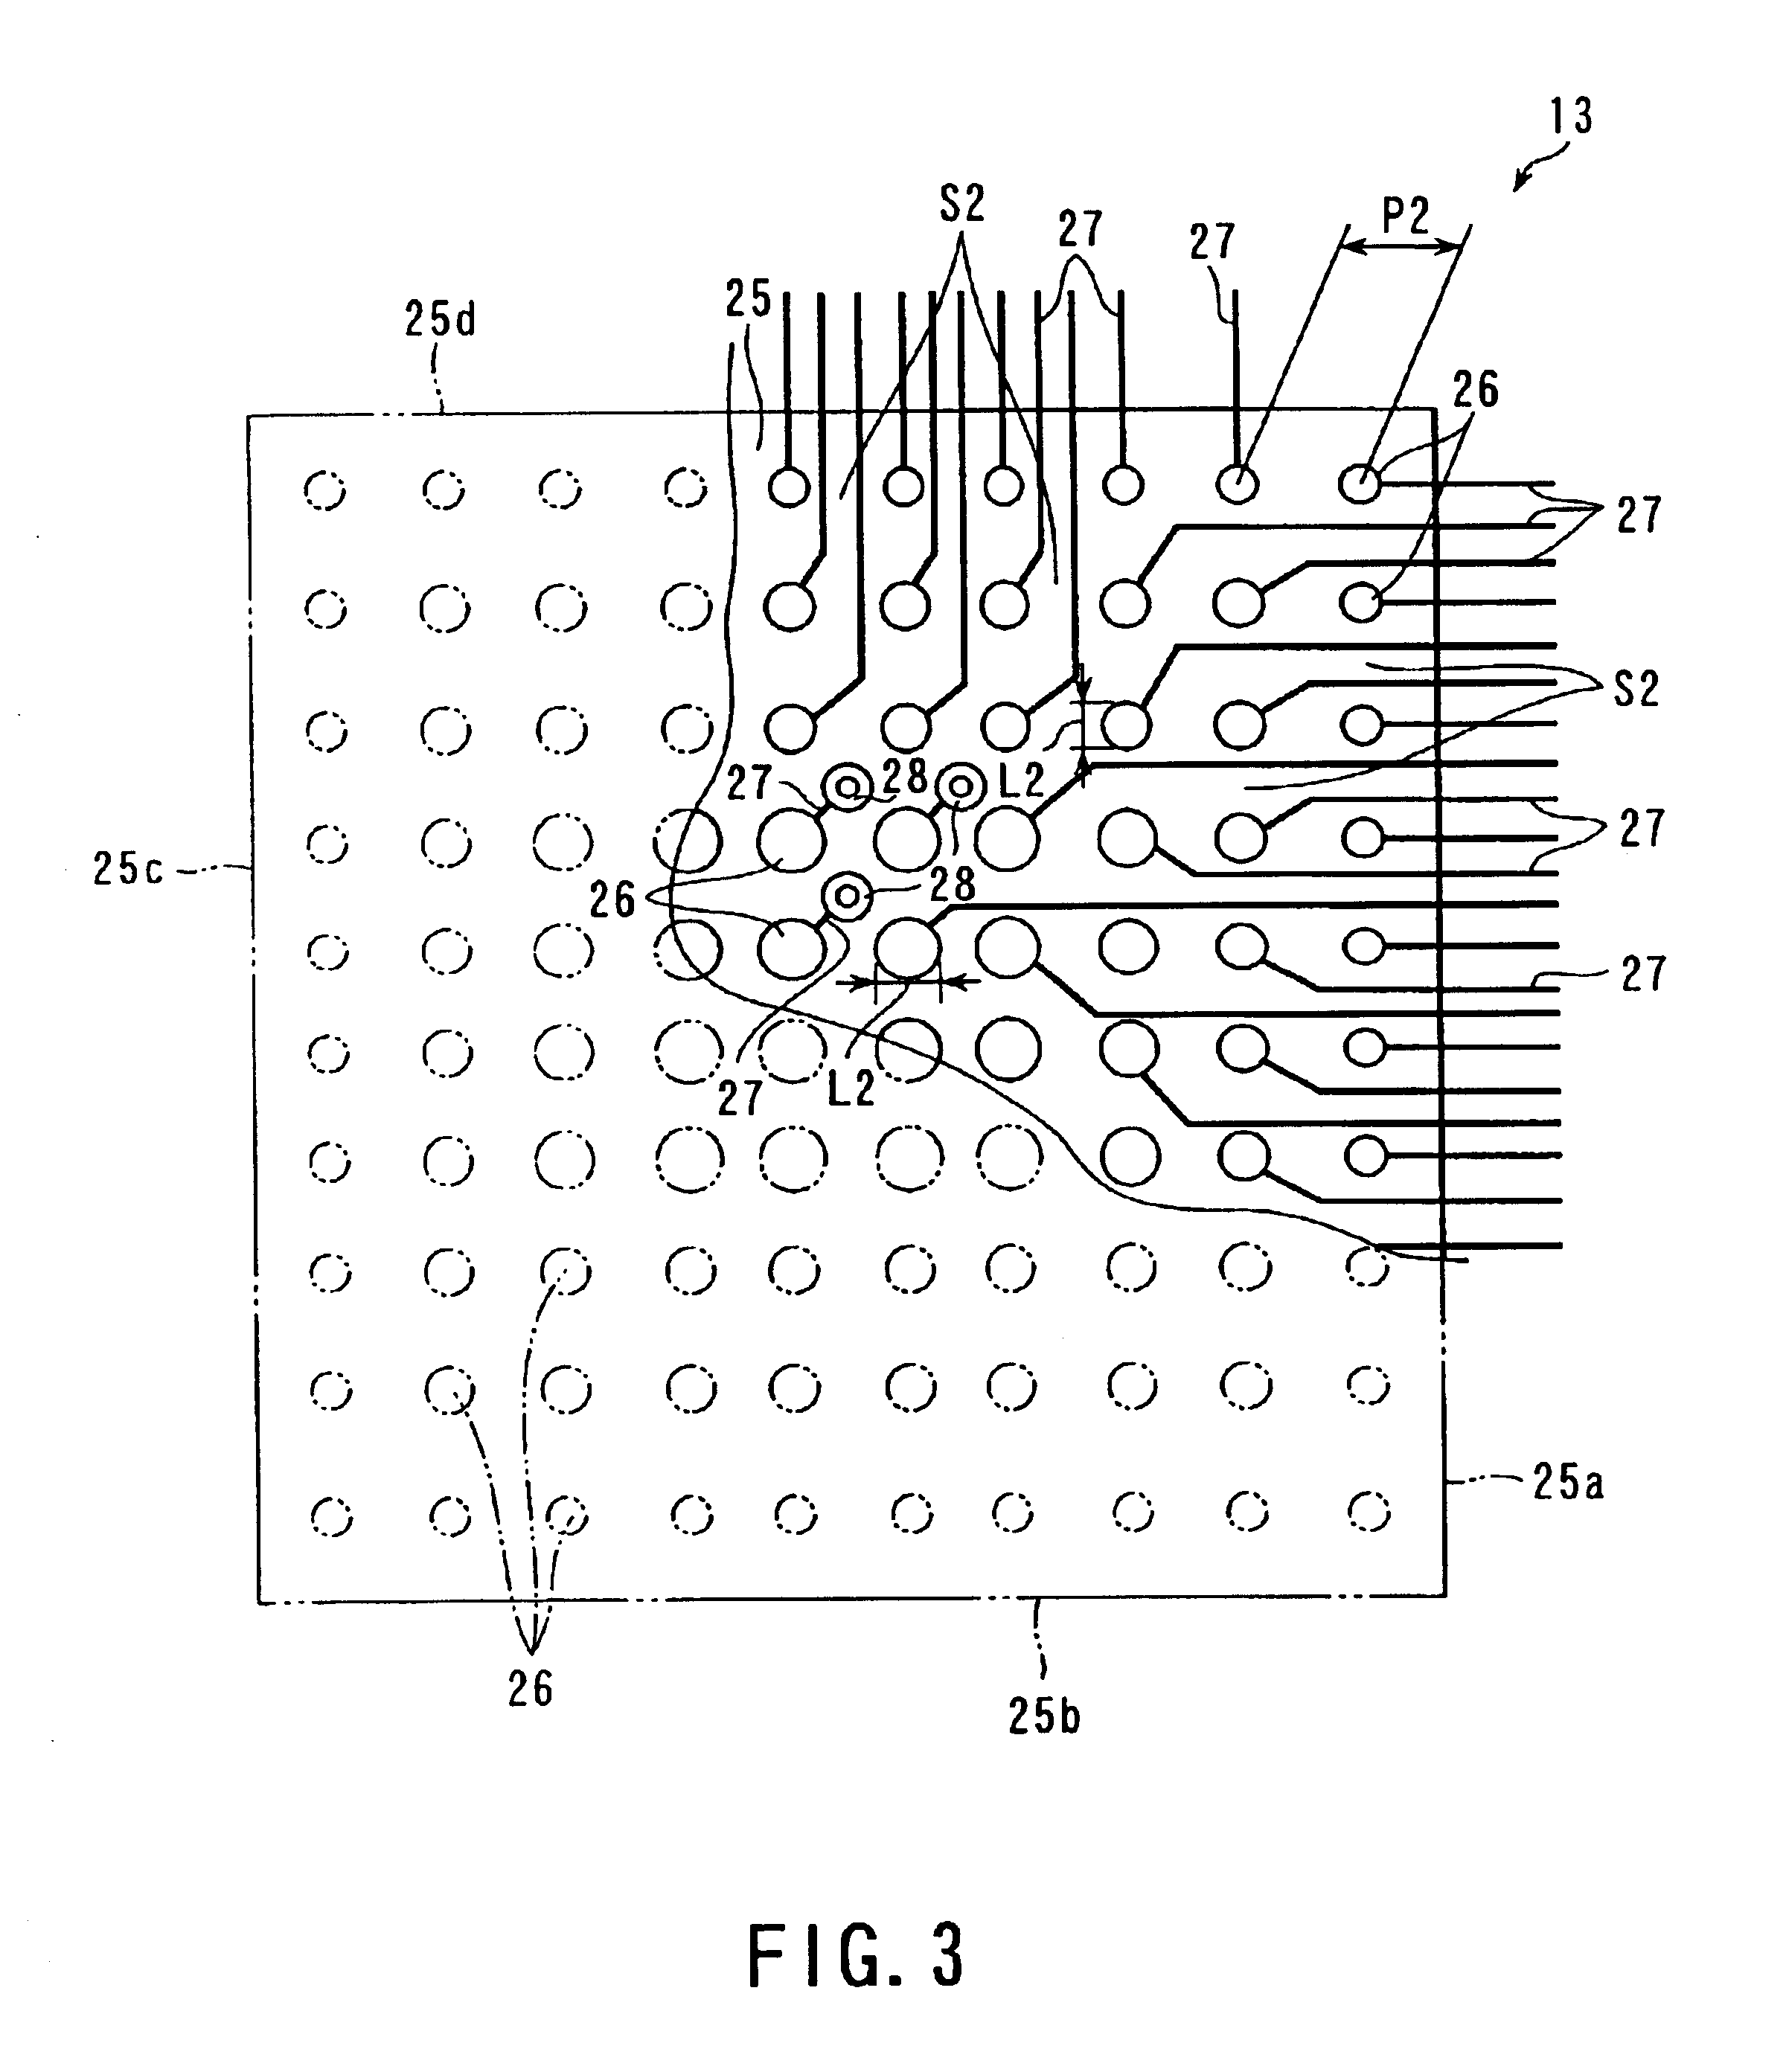 printed wiring board substrate